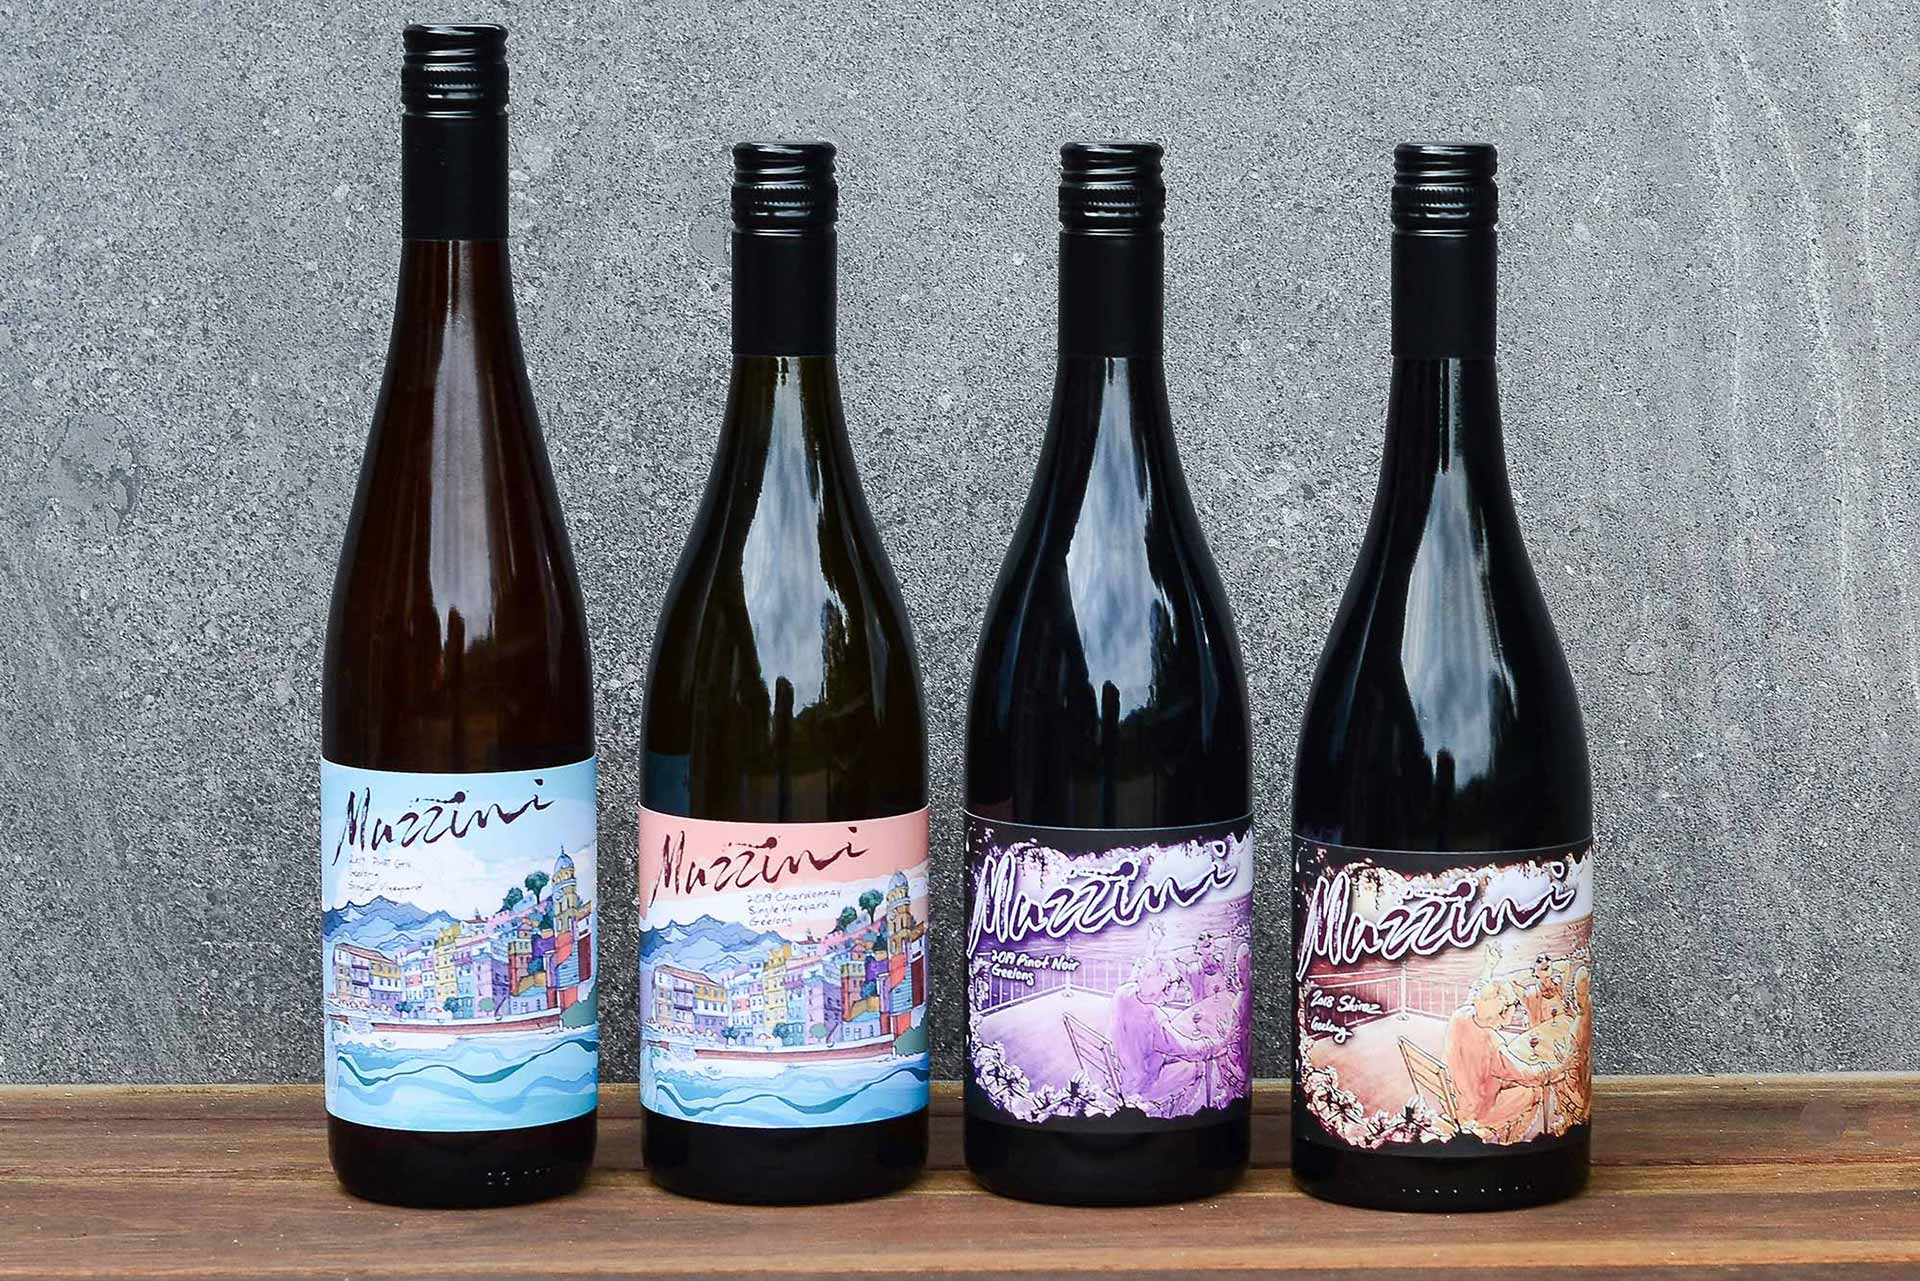 Our Geelong Wine Collection - Shiraz, Pinot Noir, Pinot Gris & Chardonnay